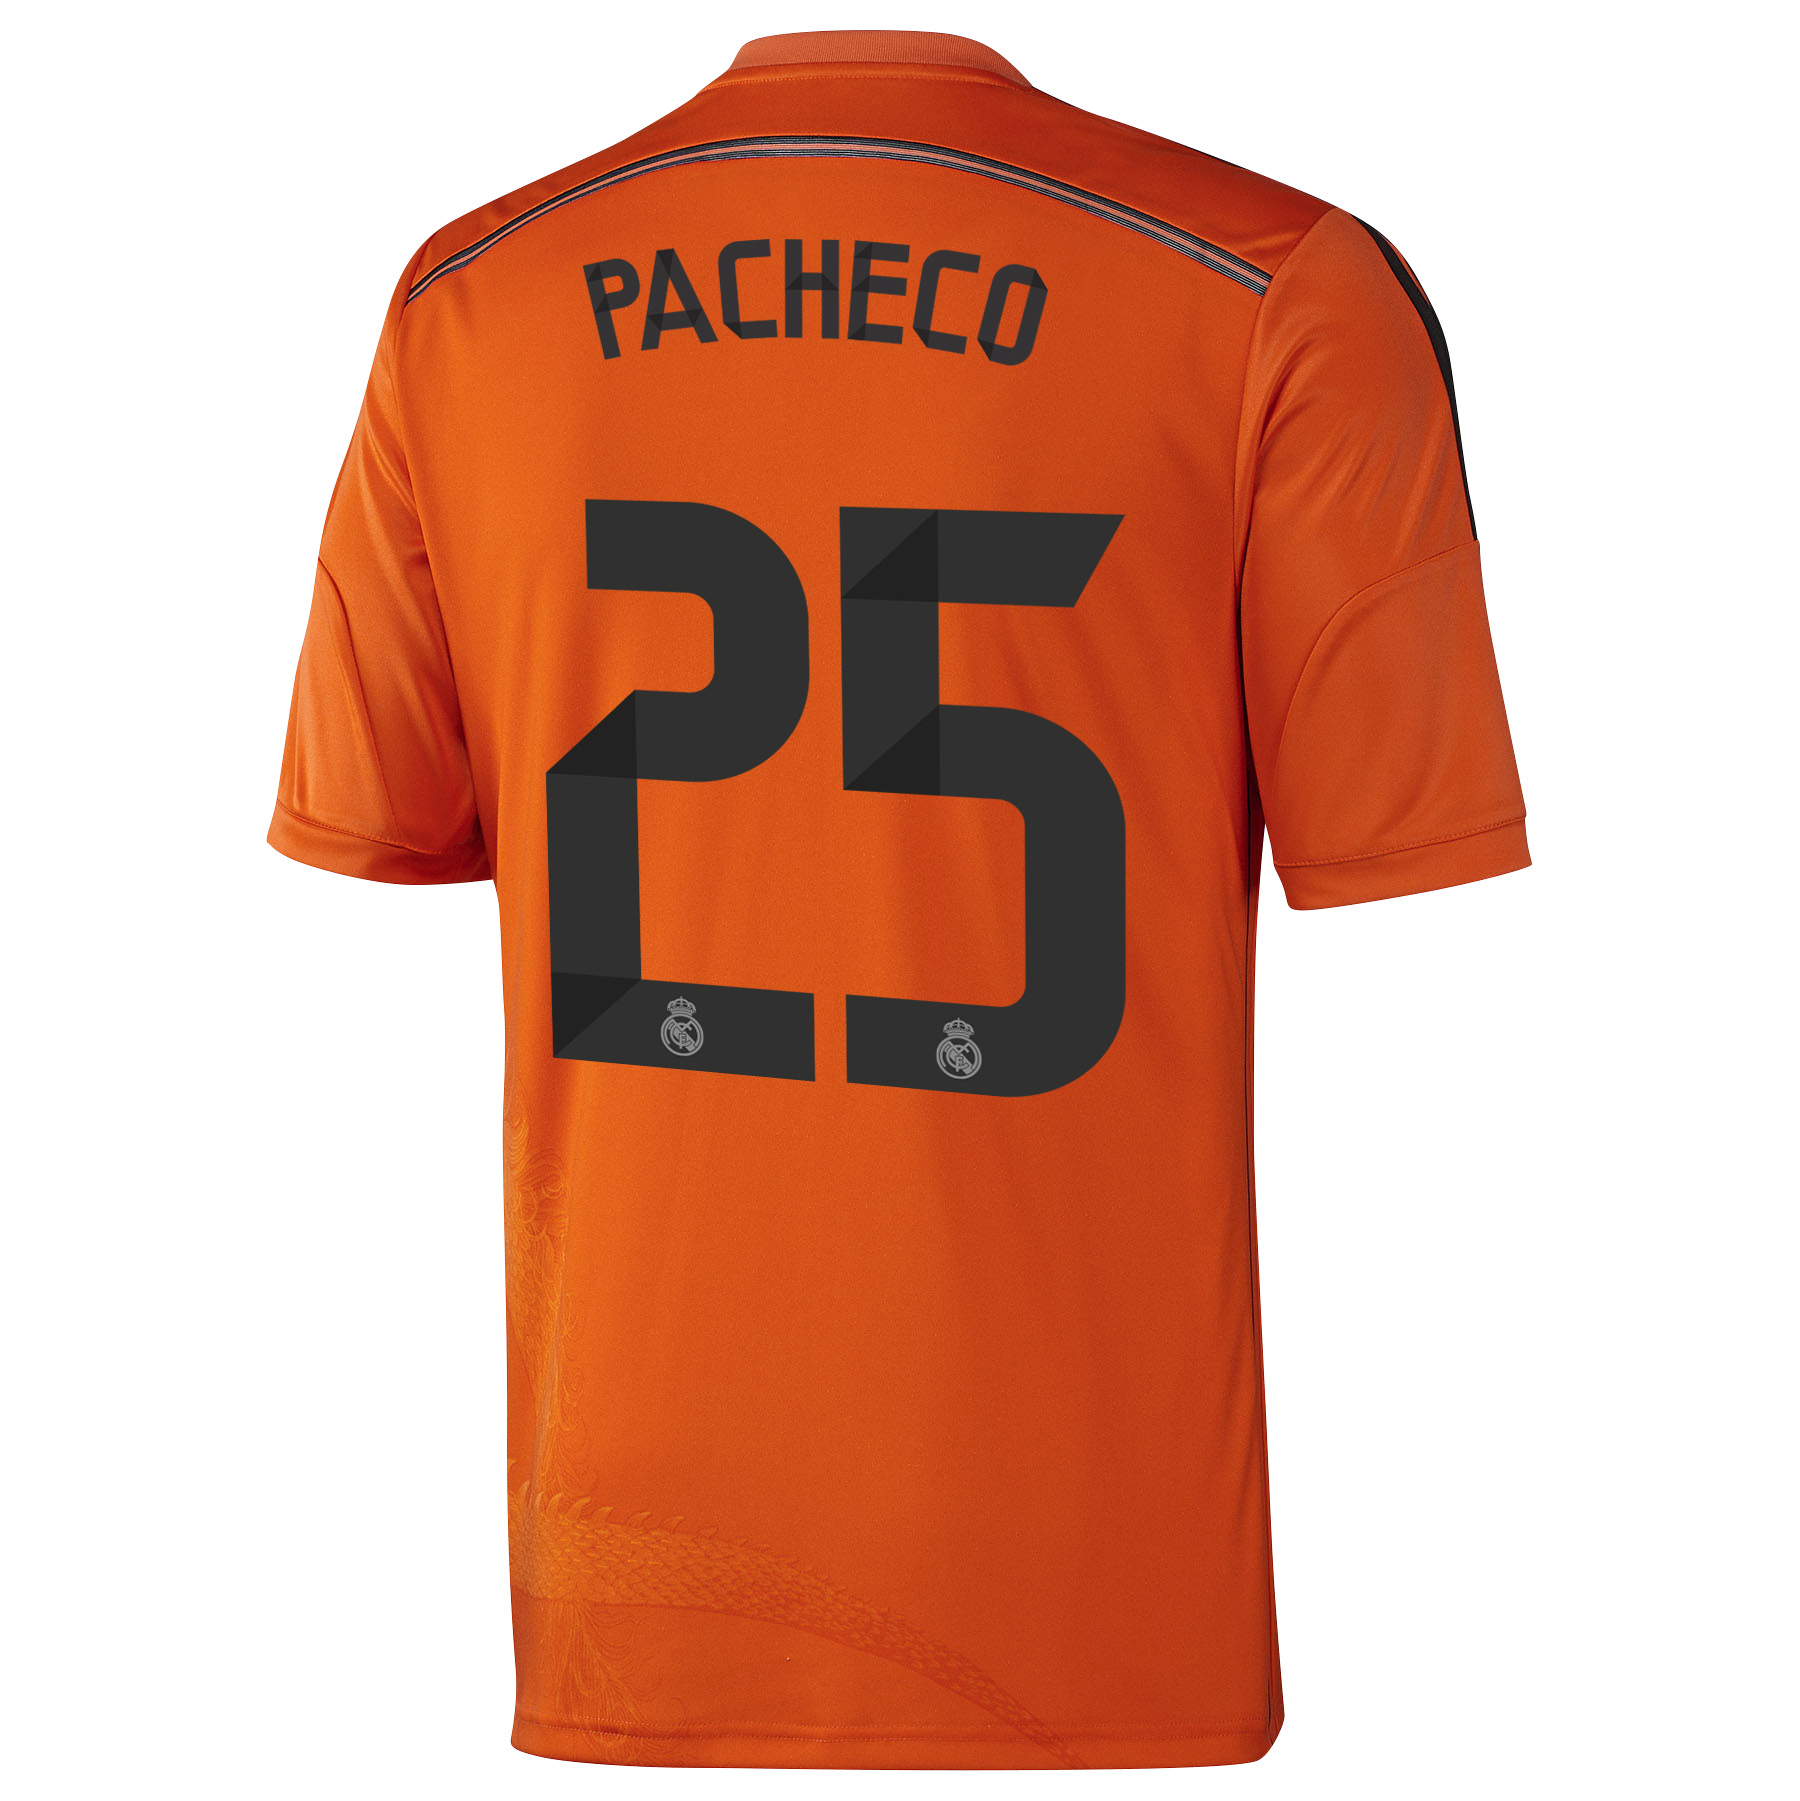 Real Madrid Third Goalkeeper Mini Kit 2014/15 with Pacheco 25 printing